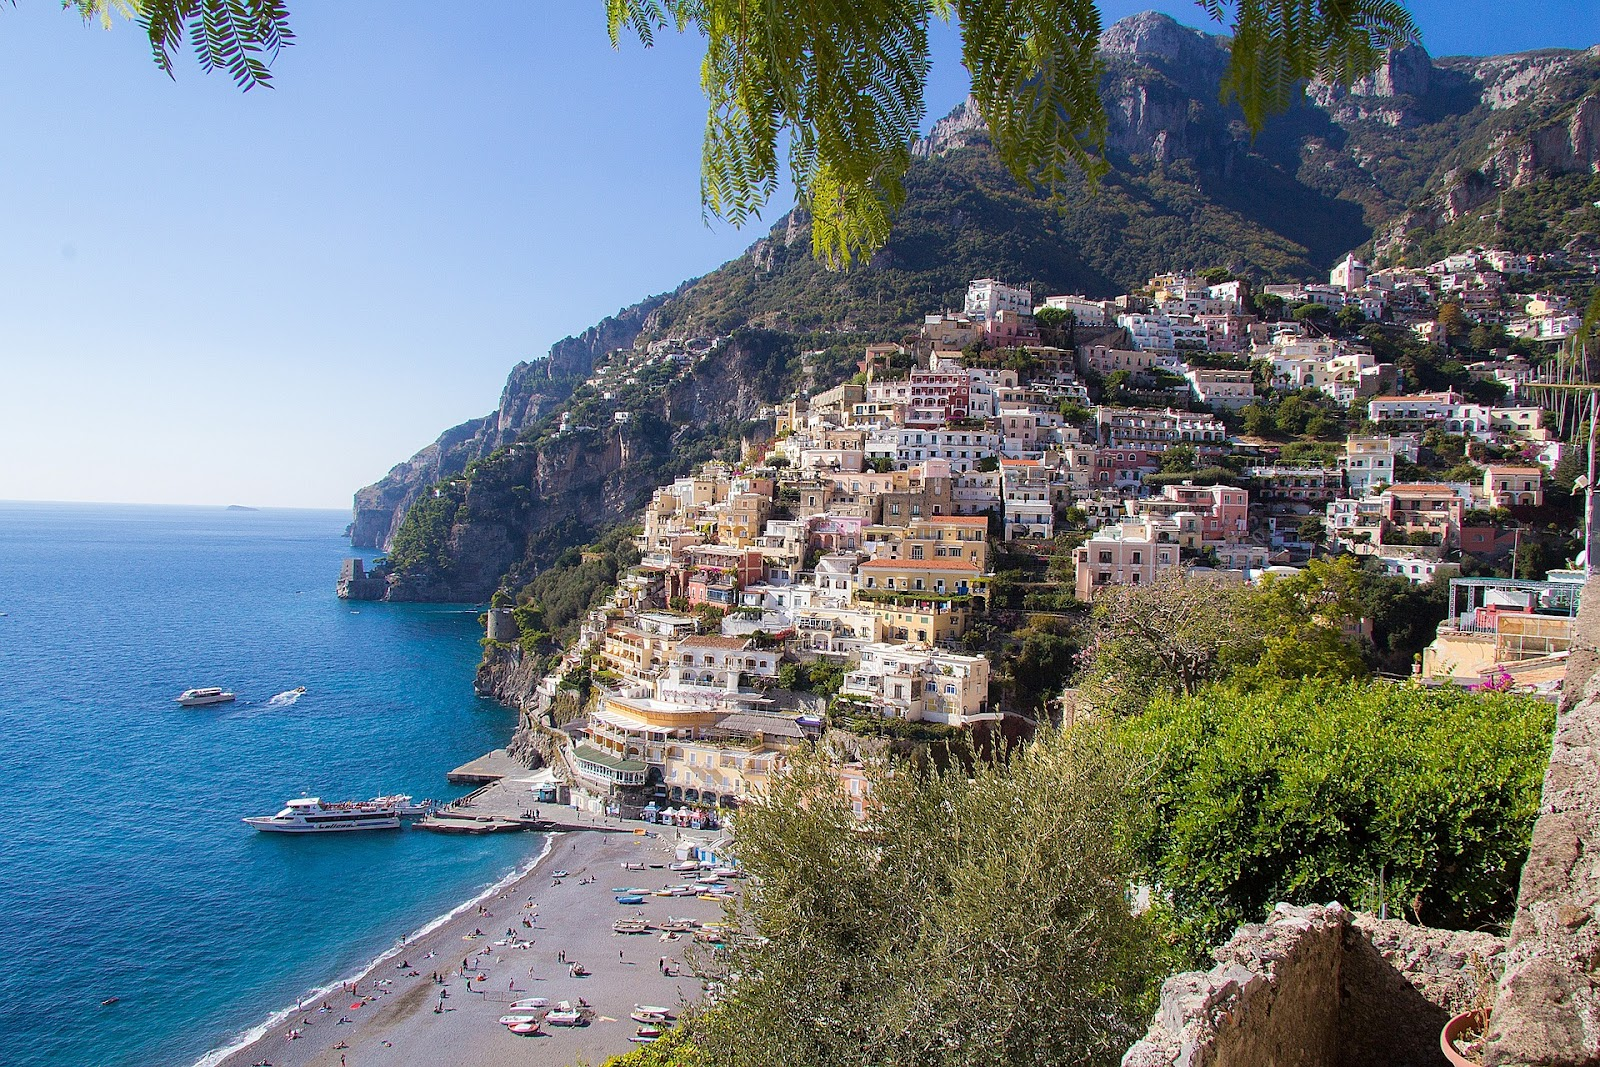 amalfi coastal village beach tourists and ships traditional italian village on seaside cliff hills in background